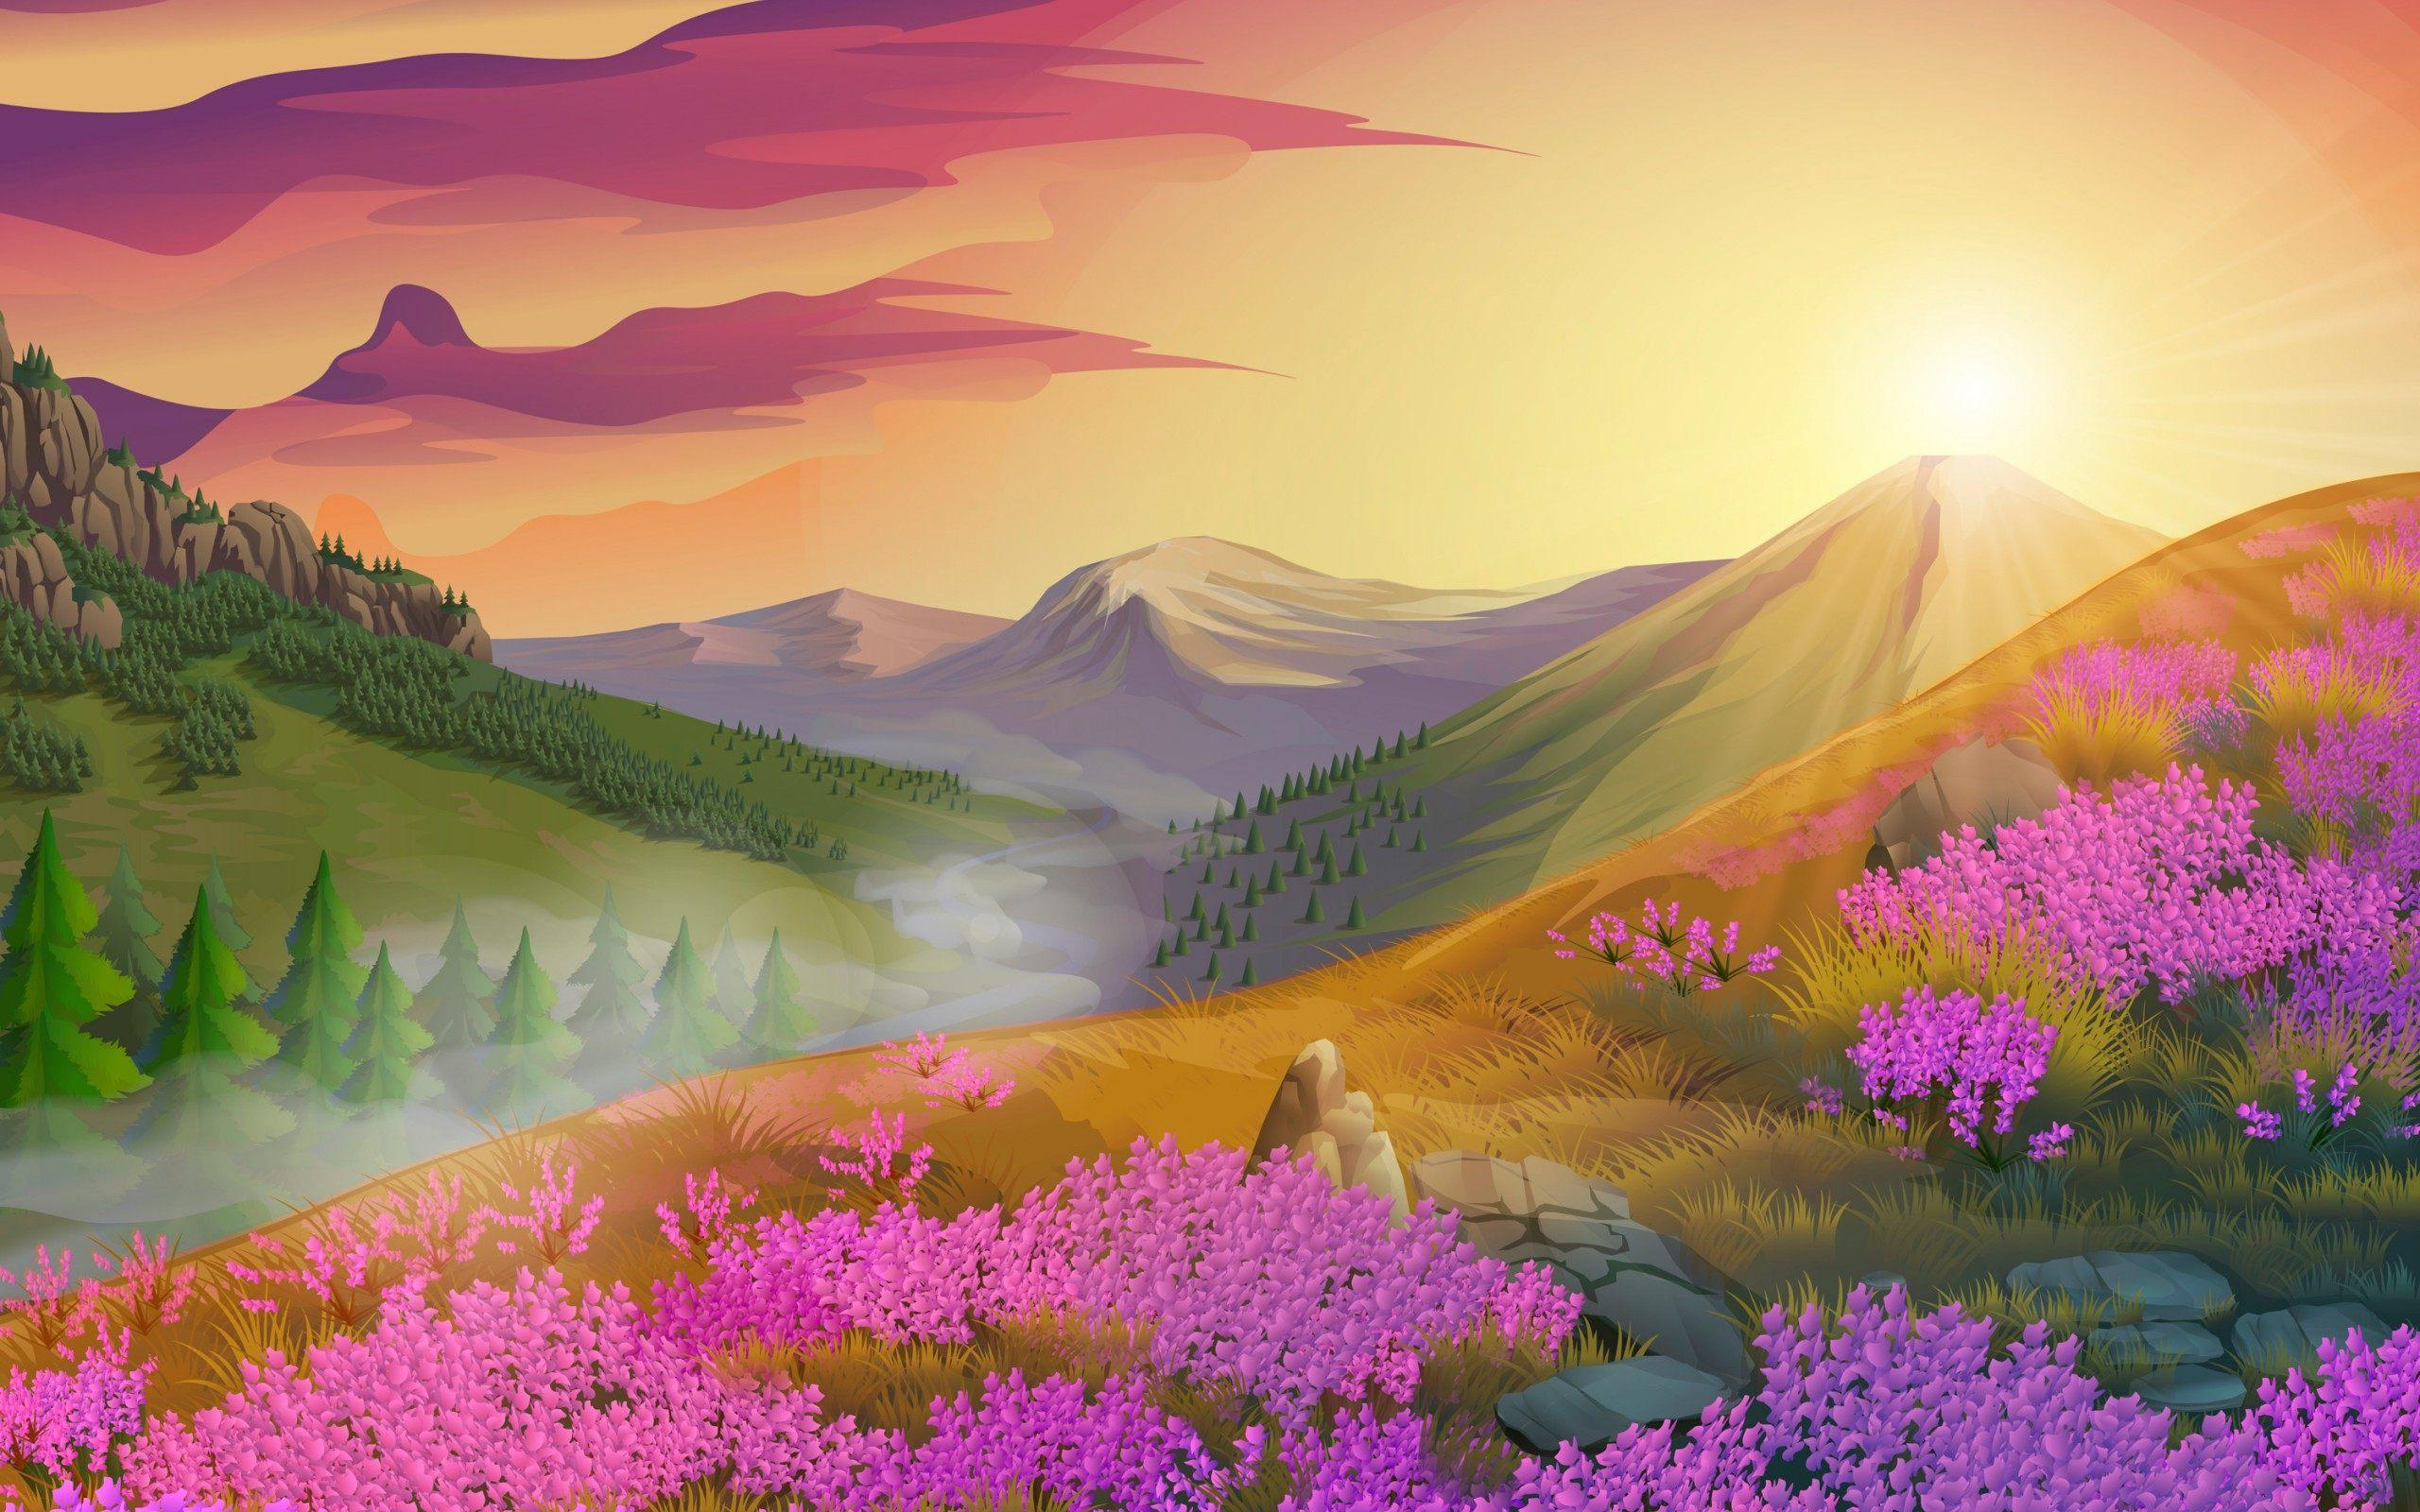 Oil Painting Wallpaper Source - Painting Of A Nature , HD Wallpaper & Backgrounds